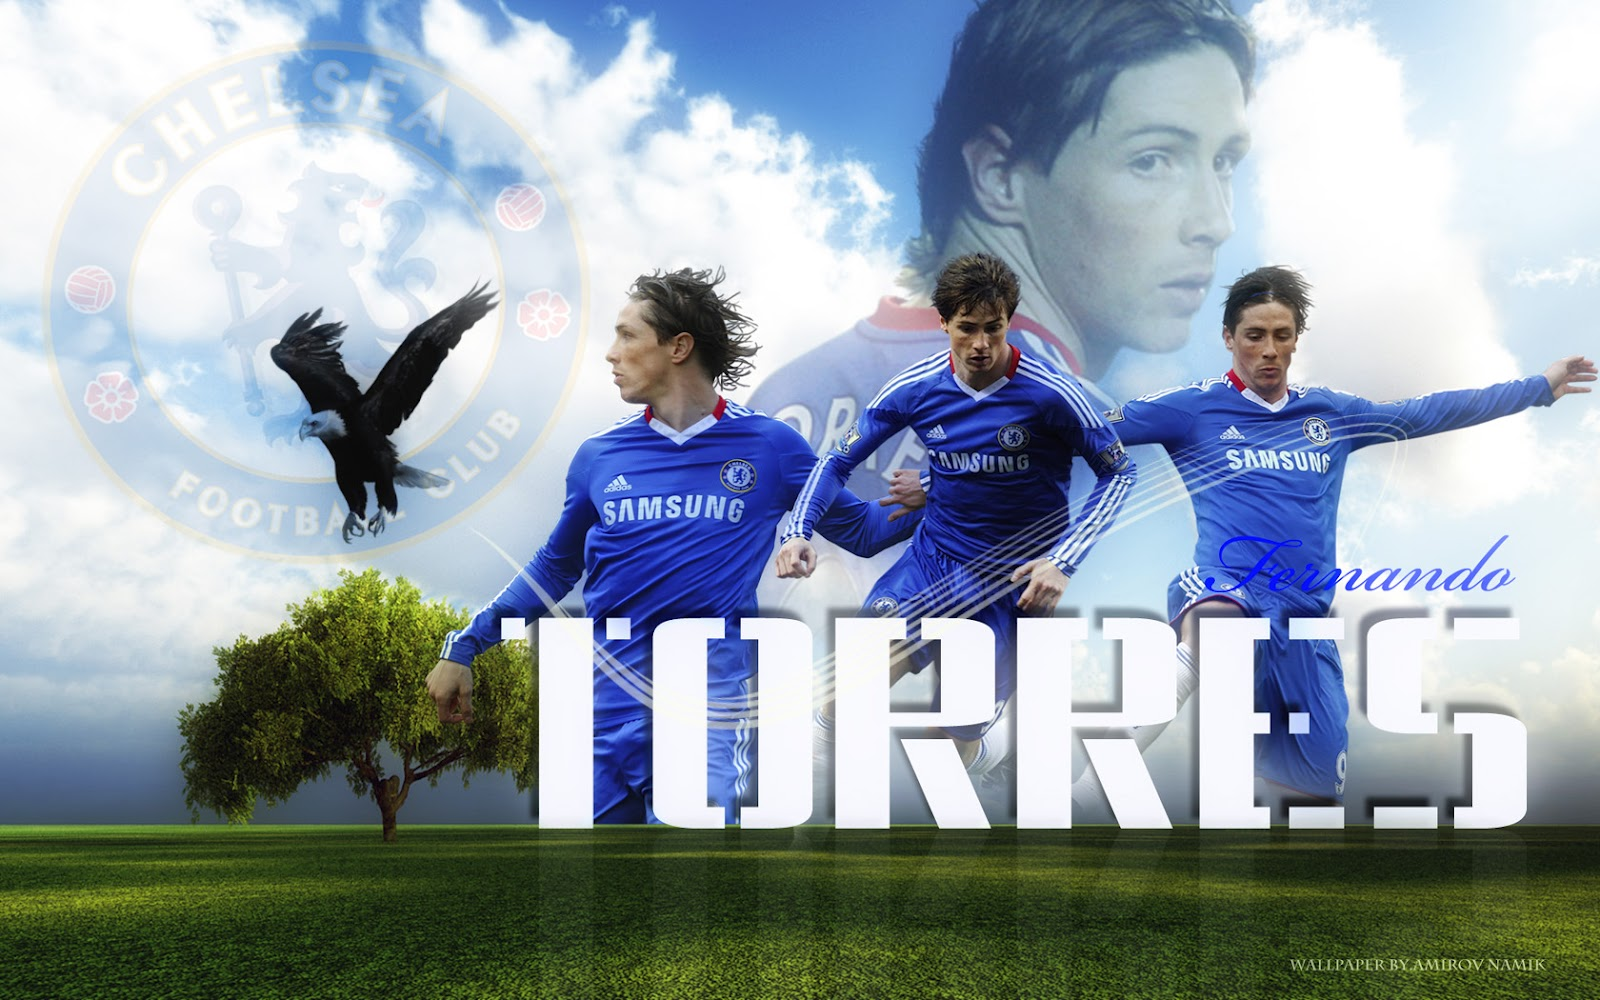 backgrounds psuperos pictures 12 wallpapers hd chelsea 2012 wallpaper 1600x1000